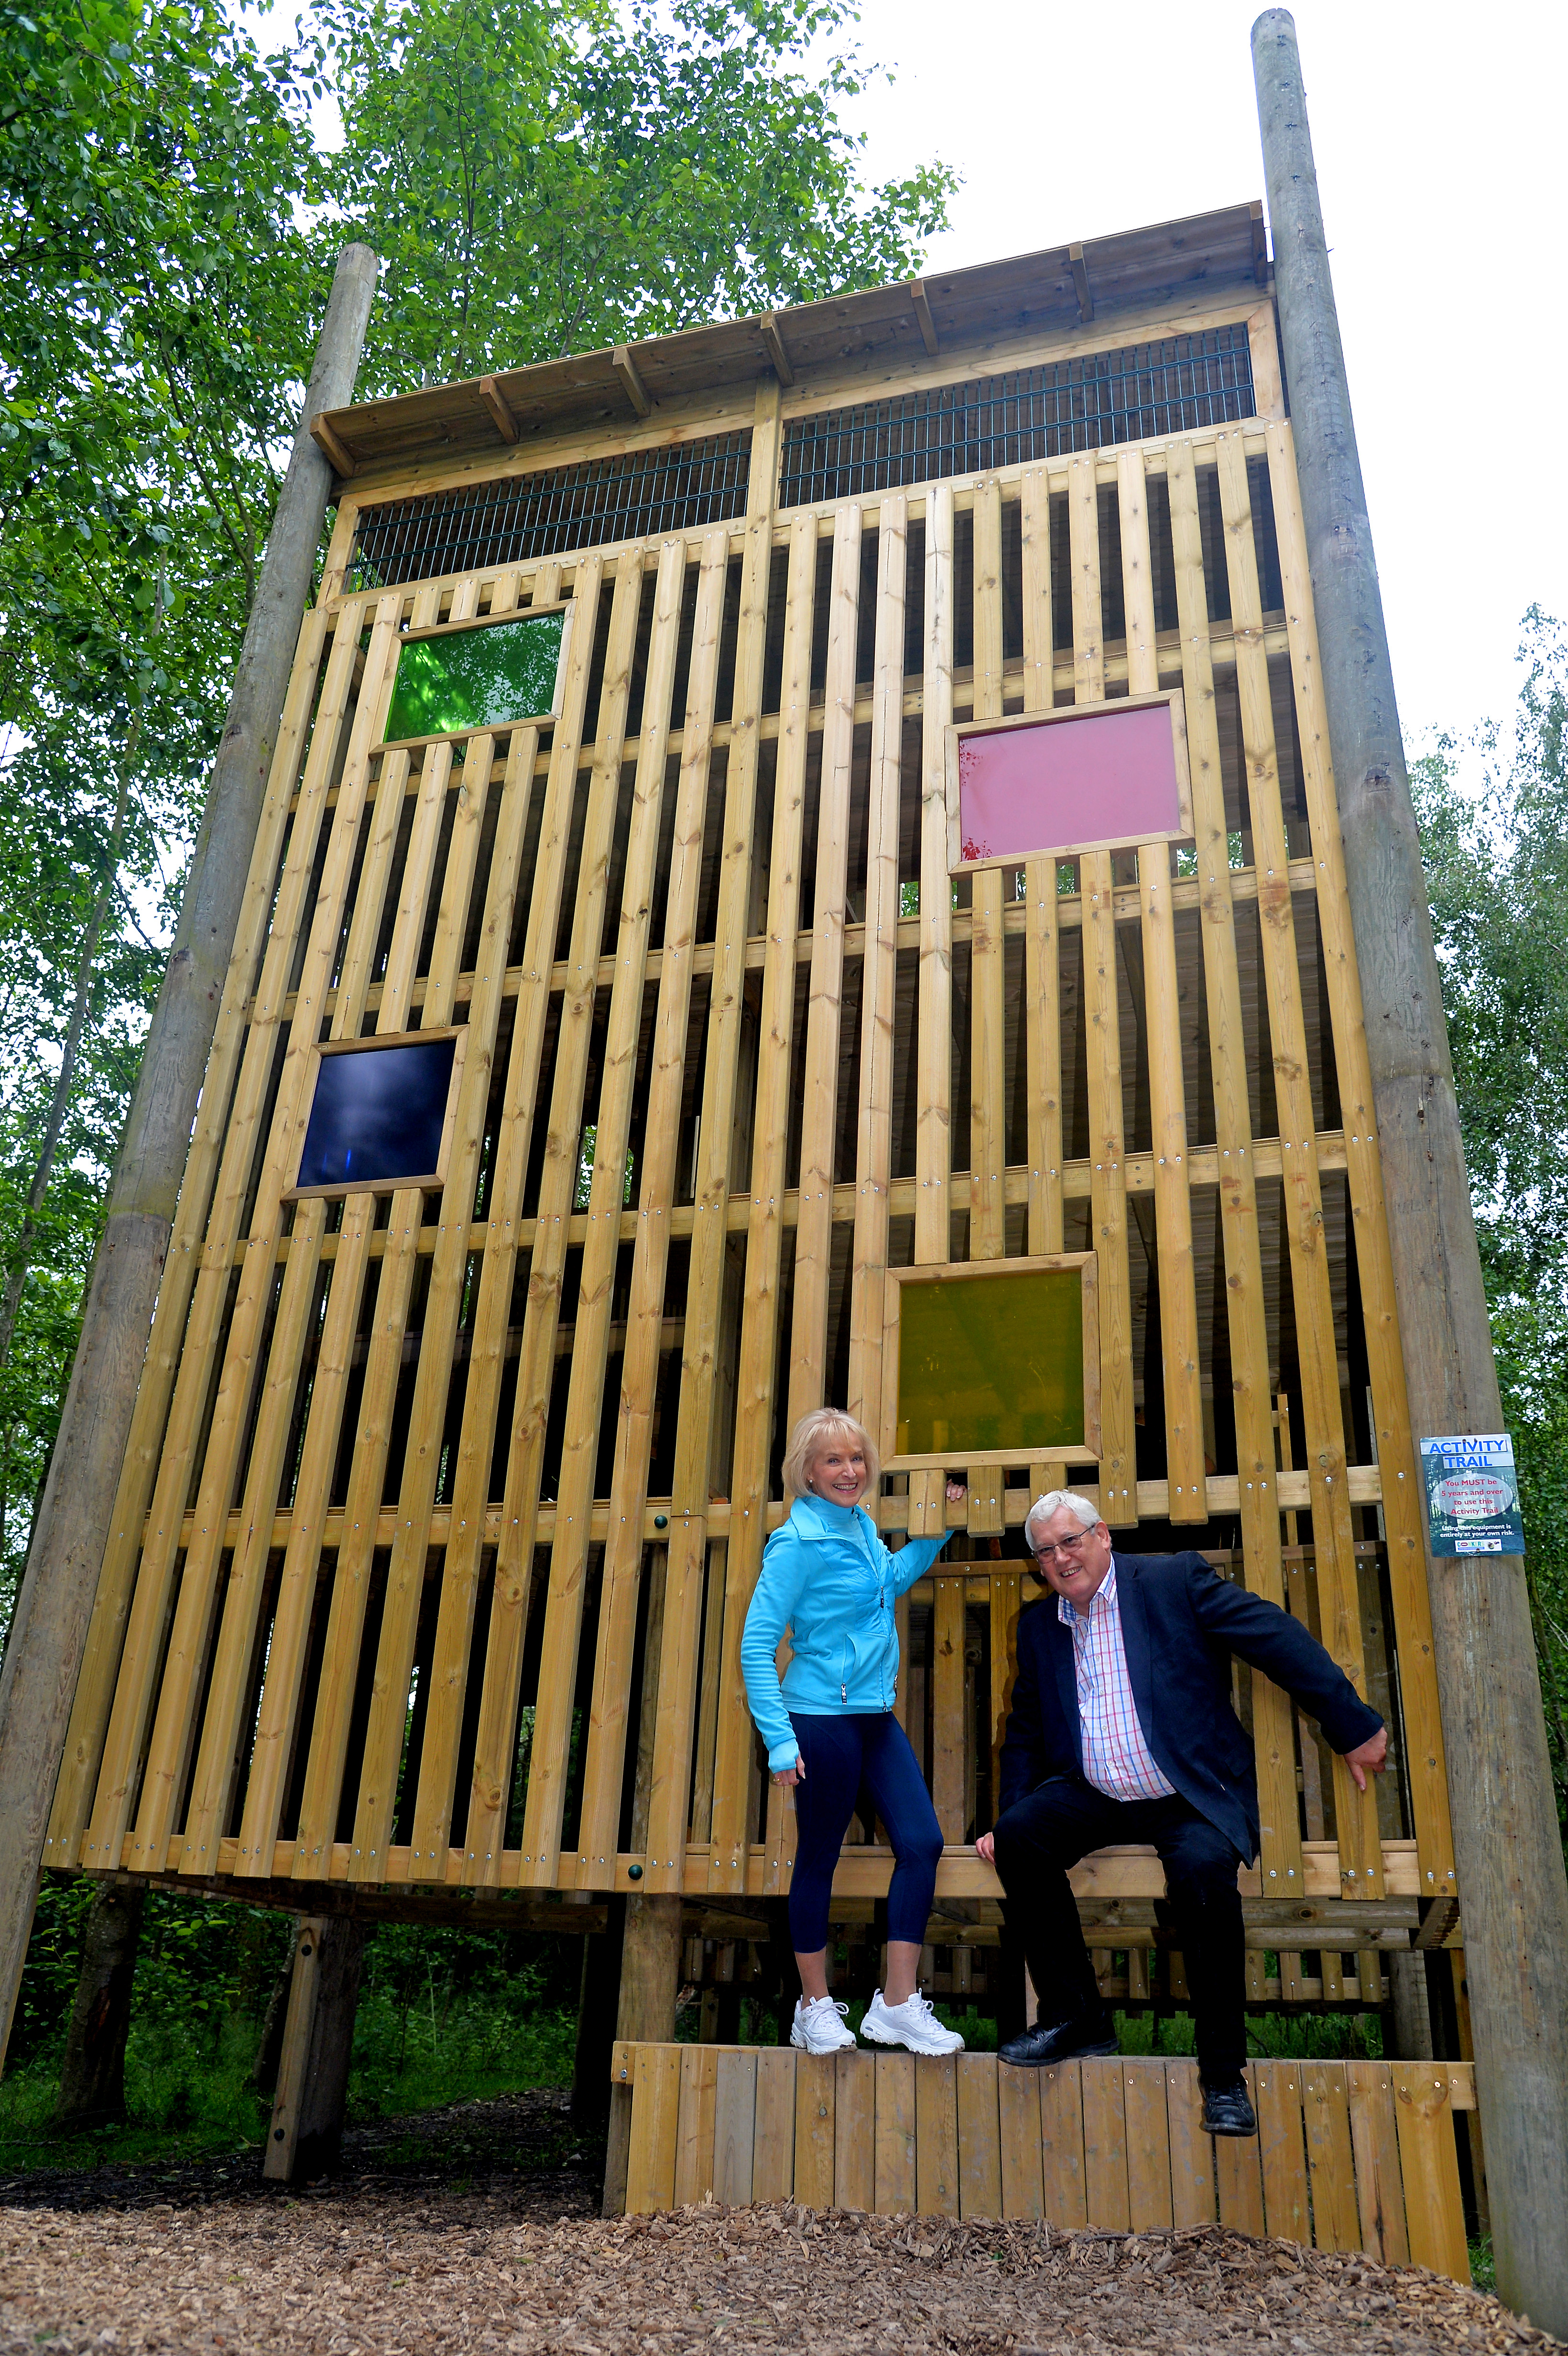 Conkers Unveils New Activity Trail